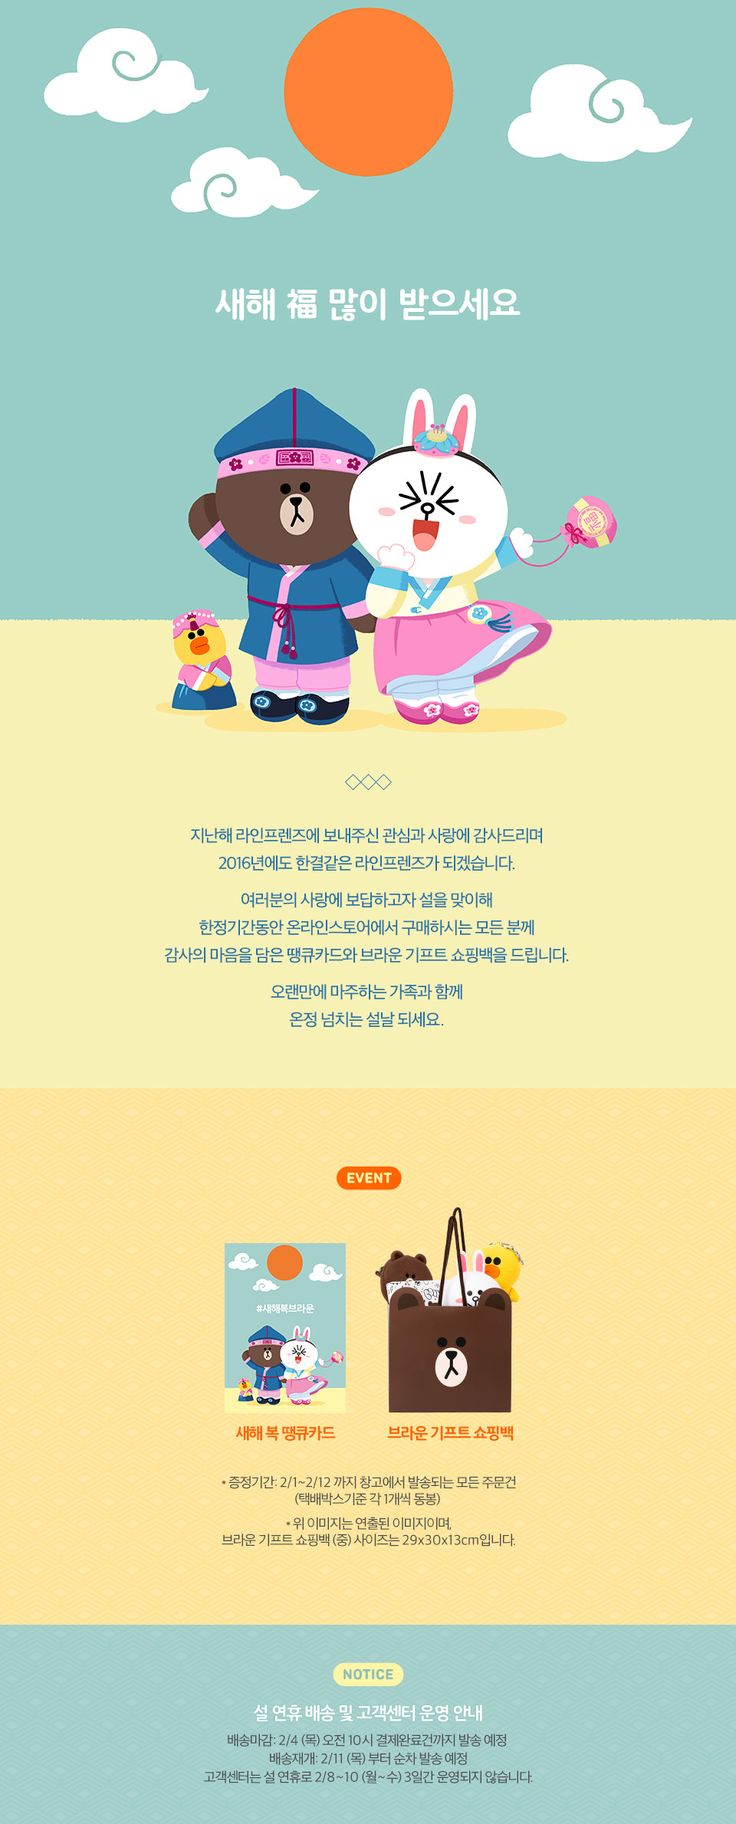 Happy New Year event image - LINE FRIENDS STORE